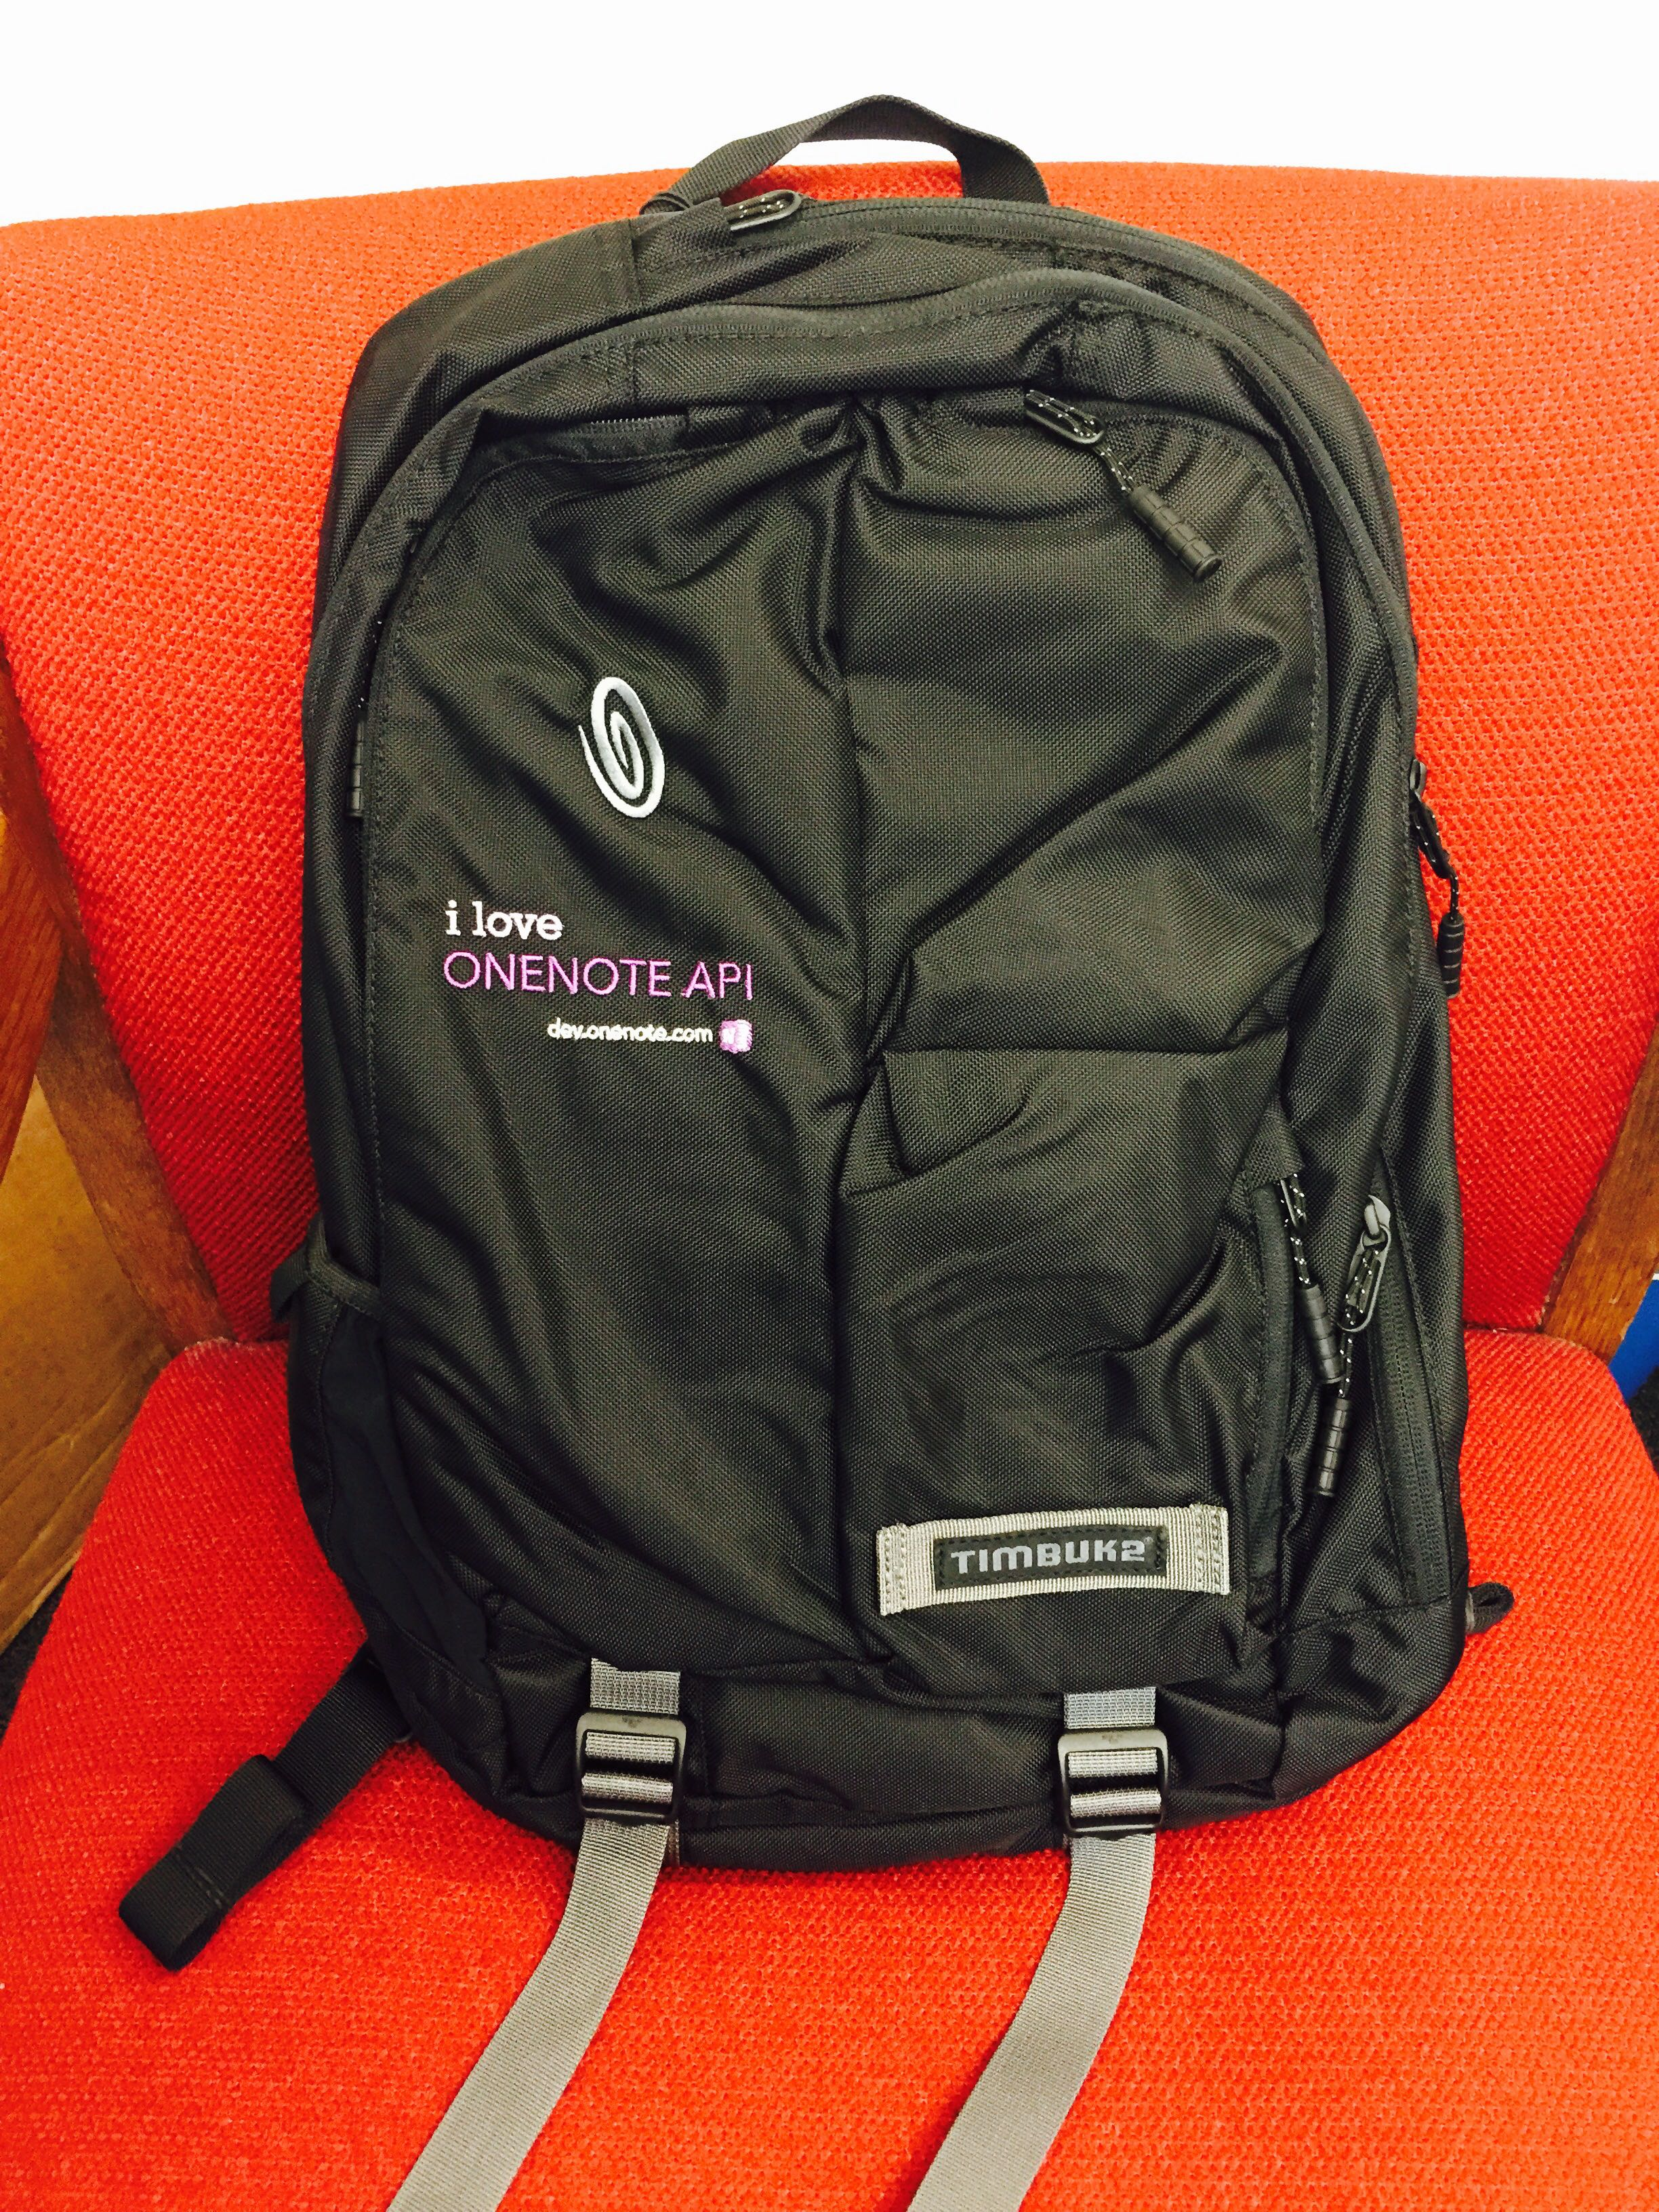 awesome OneNote API backpack